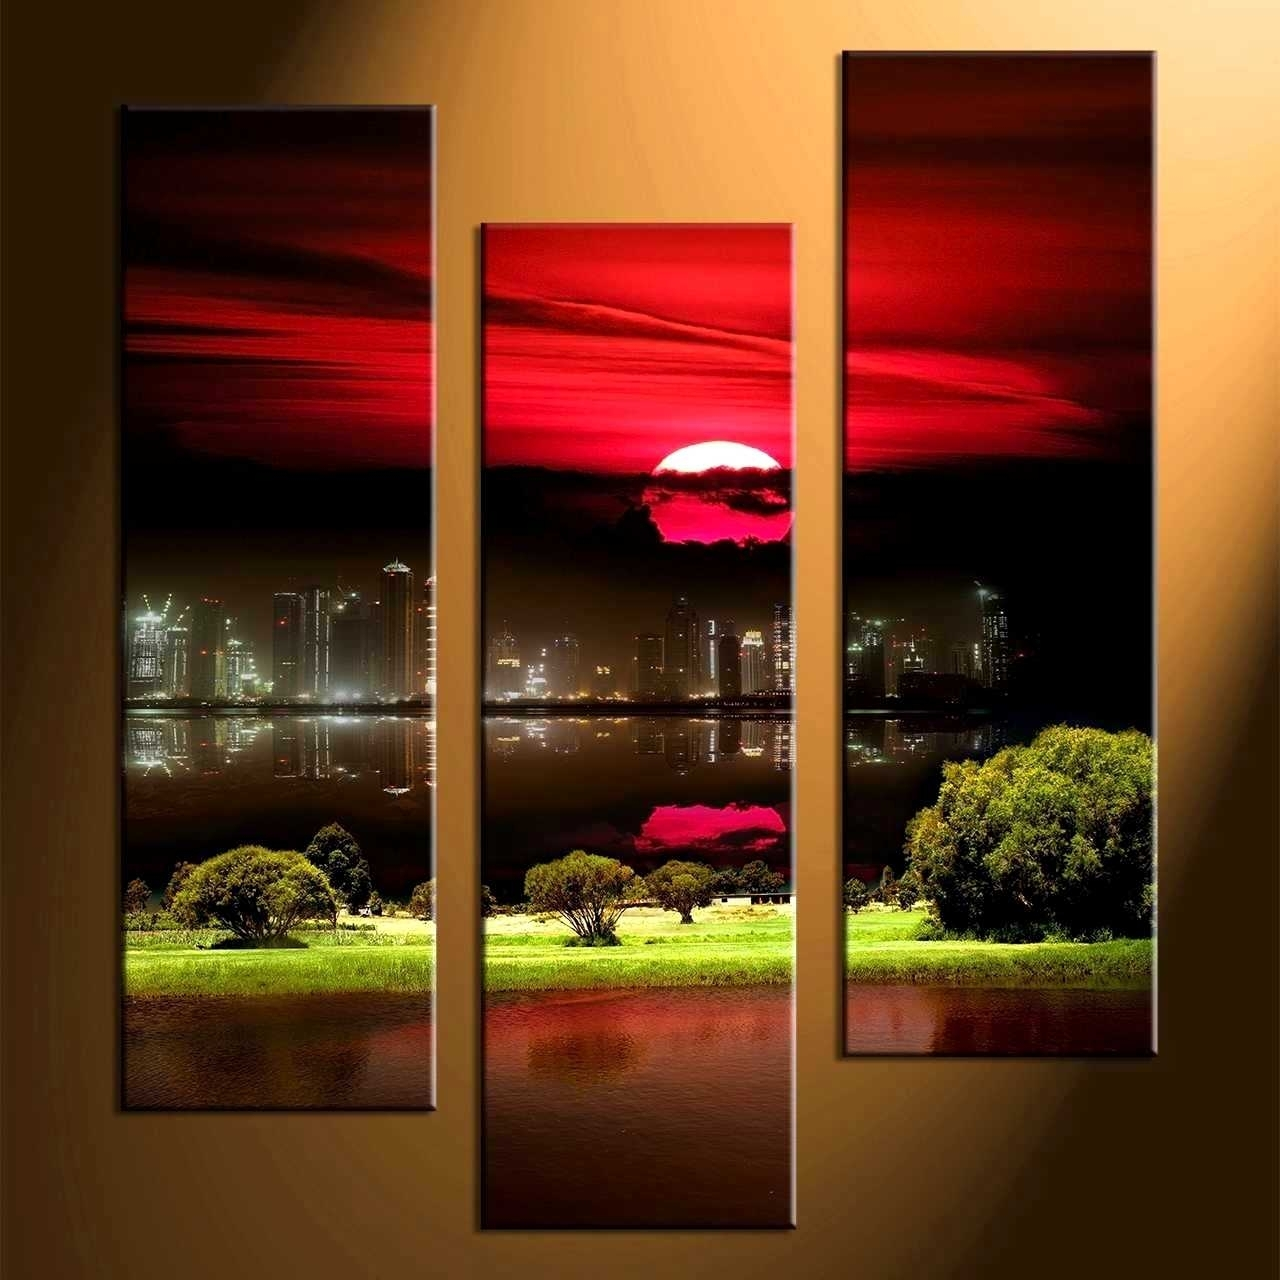 Delectable Remarkable Wall Decor Piece Canvas Art Black Artwork Home Inside Newest Red And Black Canvas Wall Art (View 10 of 20)